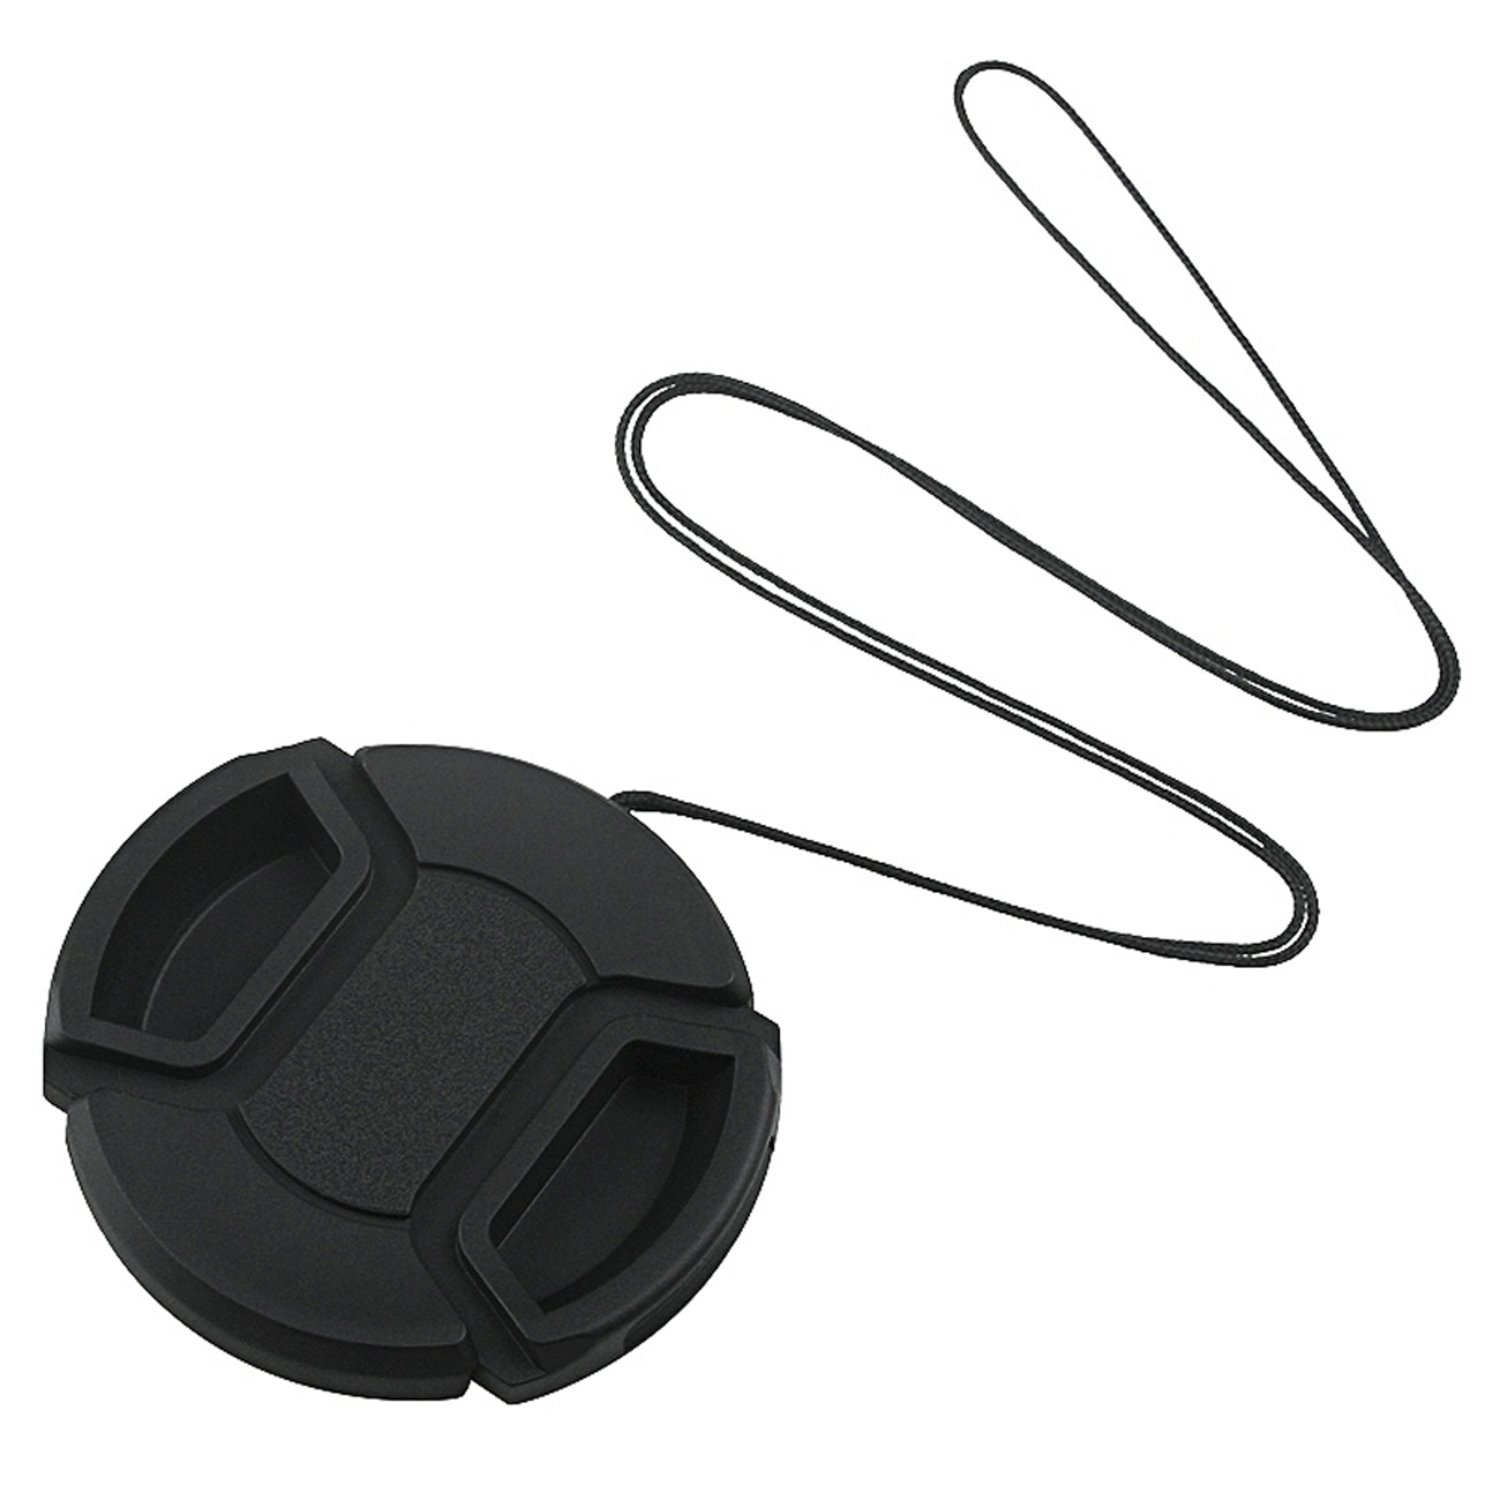 Insten 52mm Front Lens Cap Hood Cover Snap-on with cord for Nikon Canon Pentax Sony